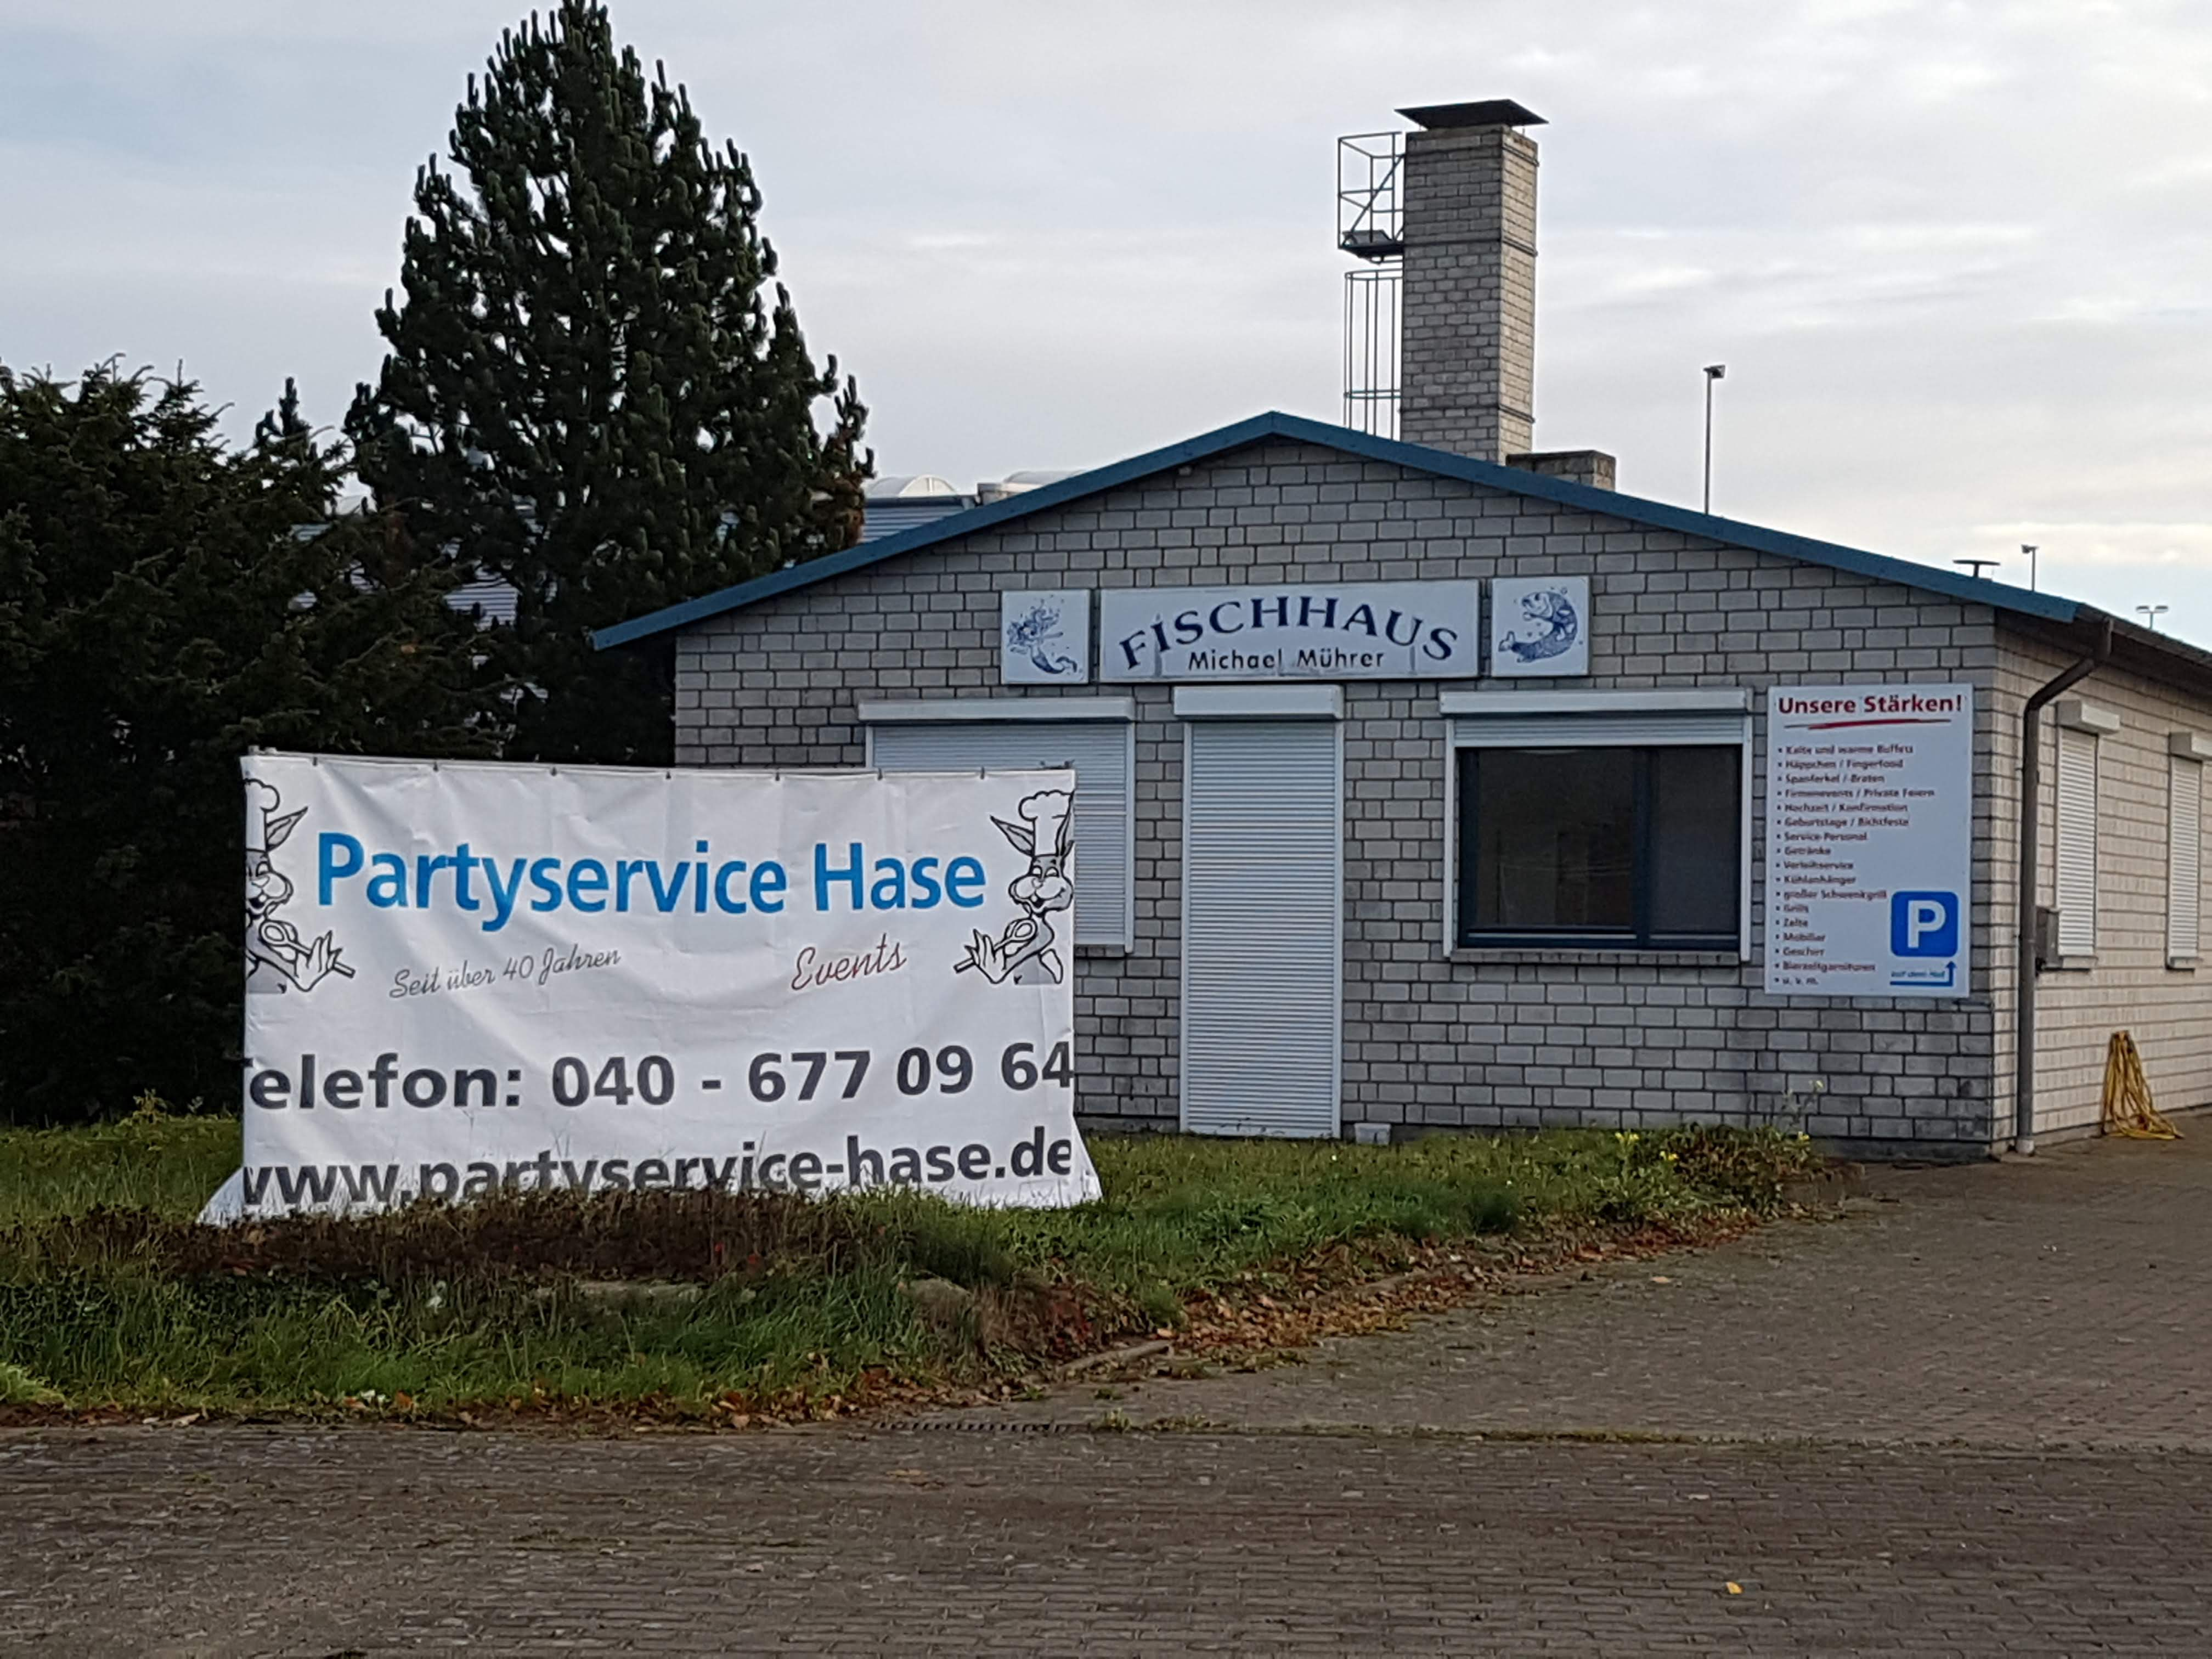 Partyservice Hase in Wahlstedt